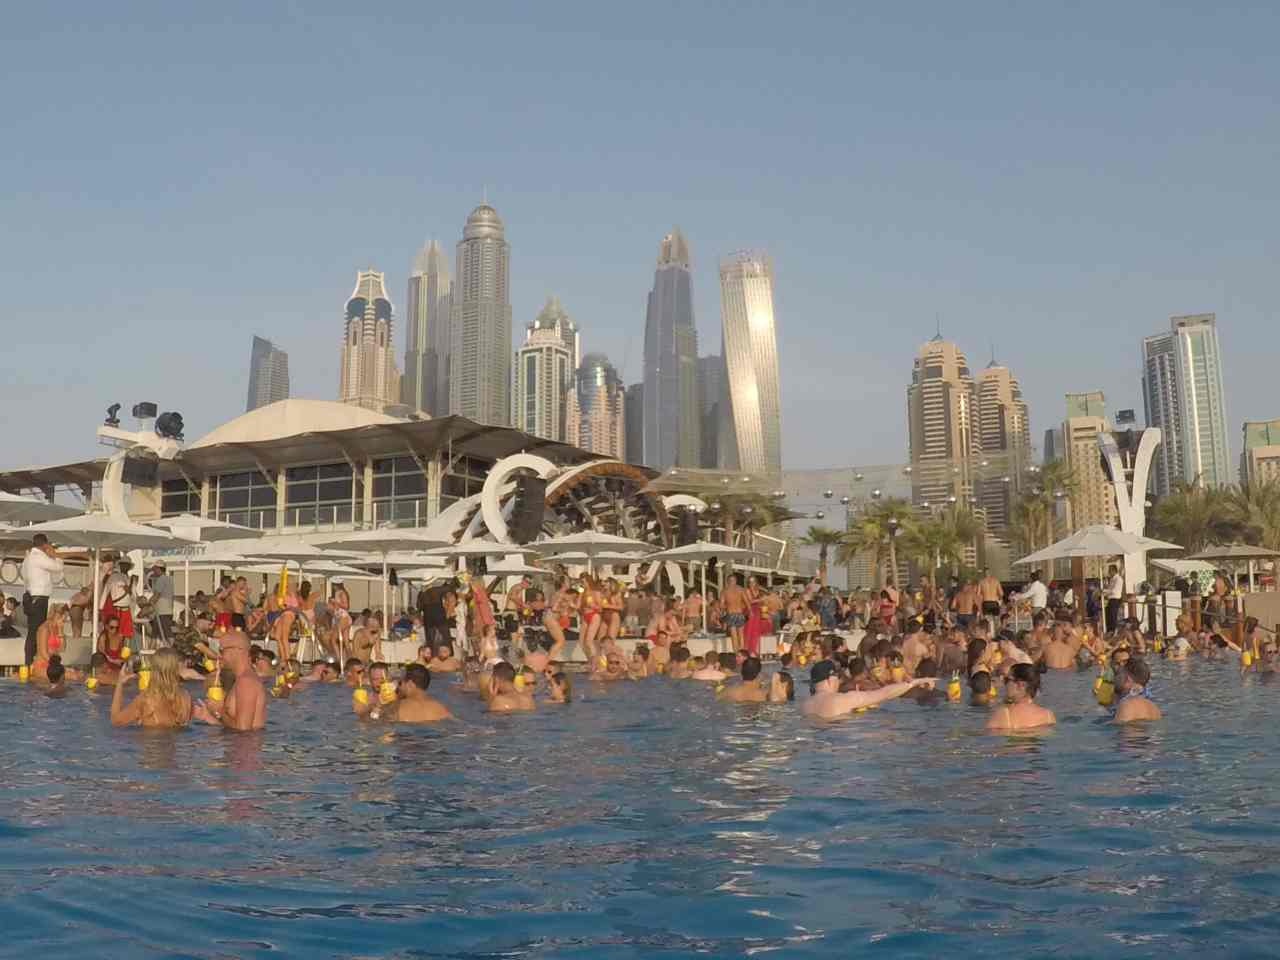 Pool party zero gravity Dubai